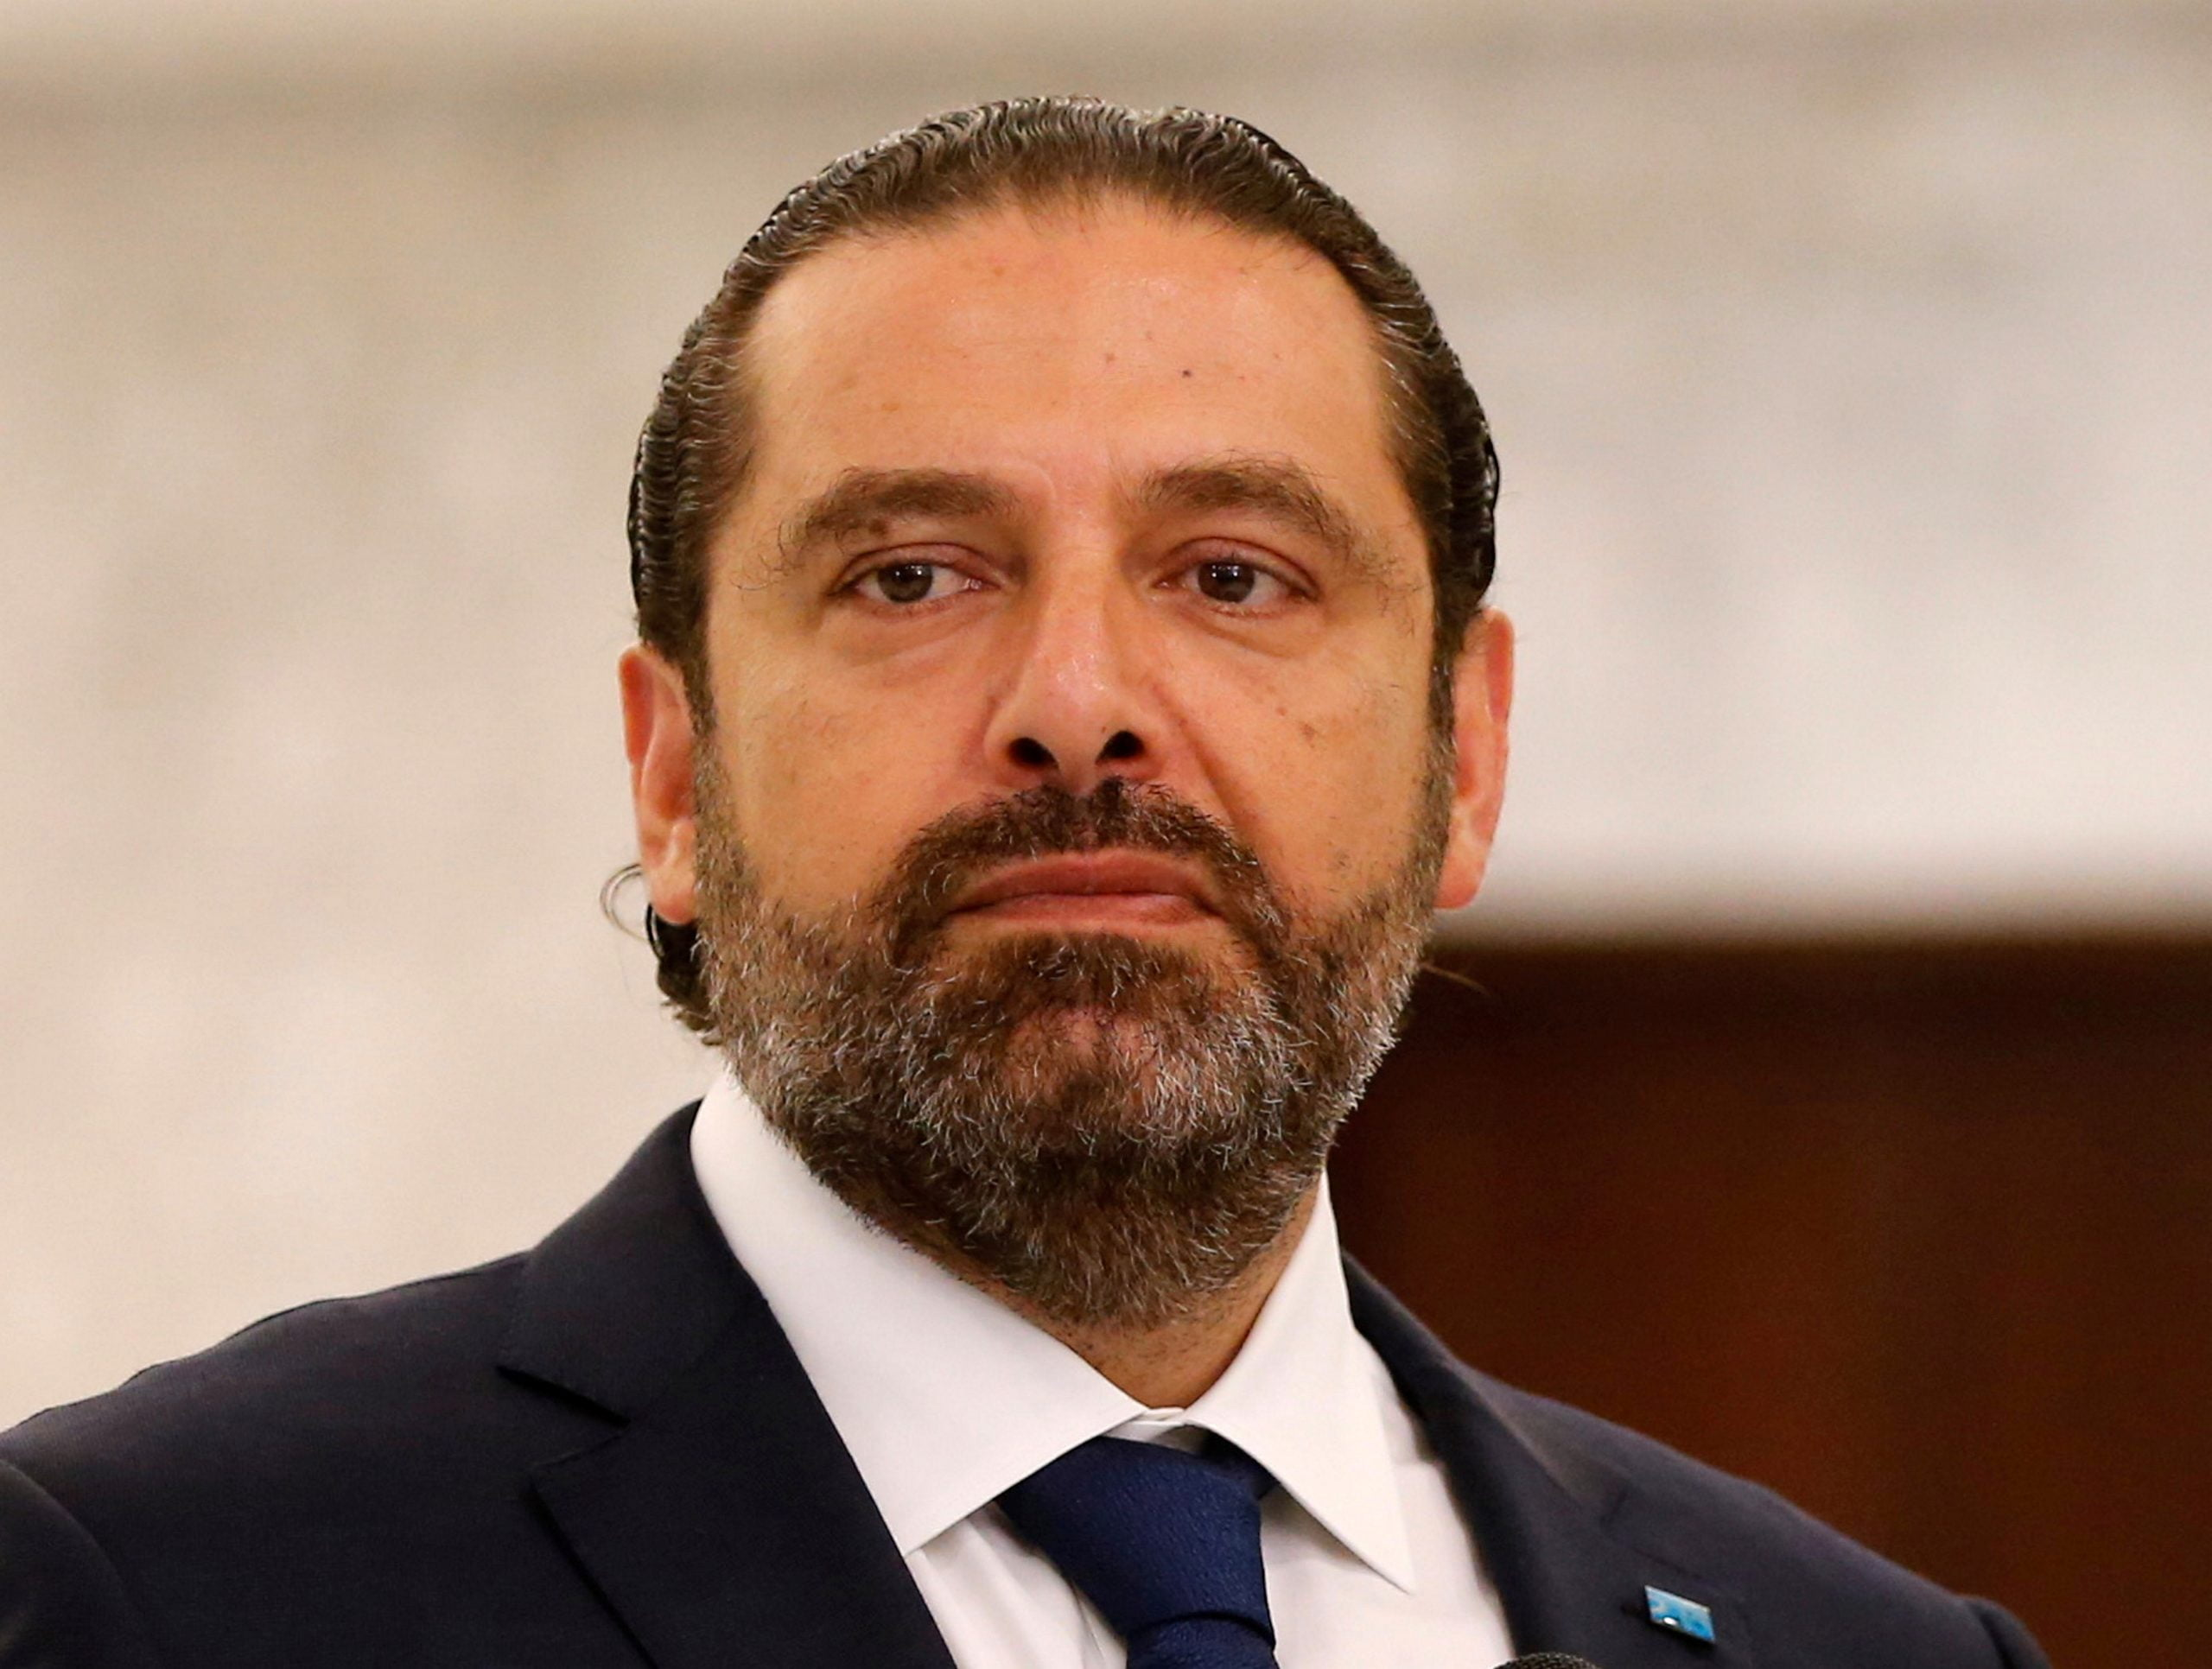 The new prime minister of Lebanon hopes to form a government in six weeks